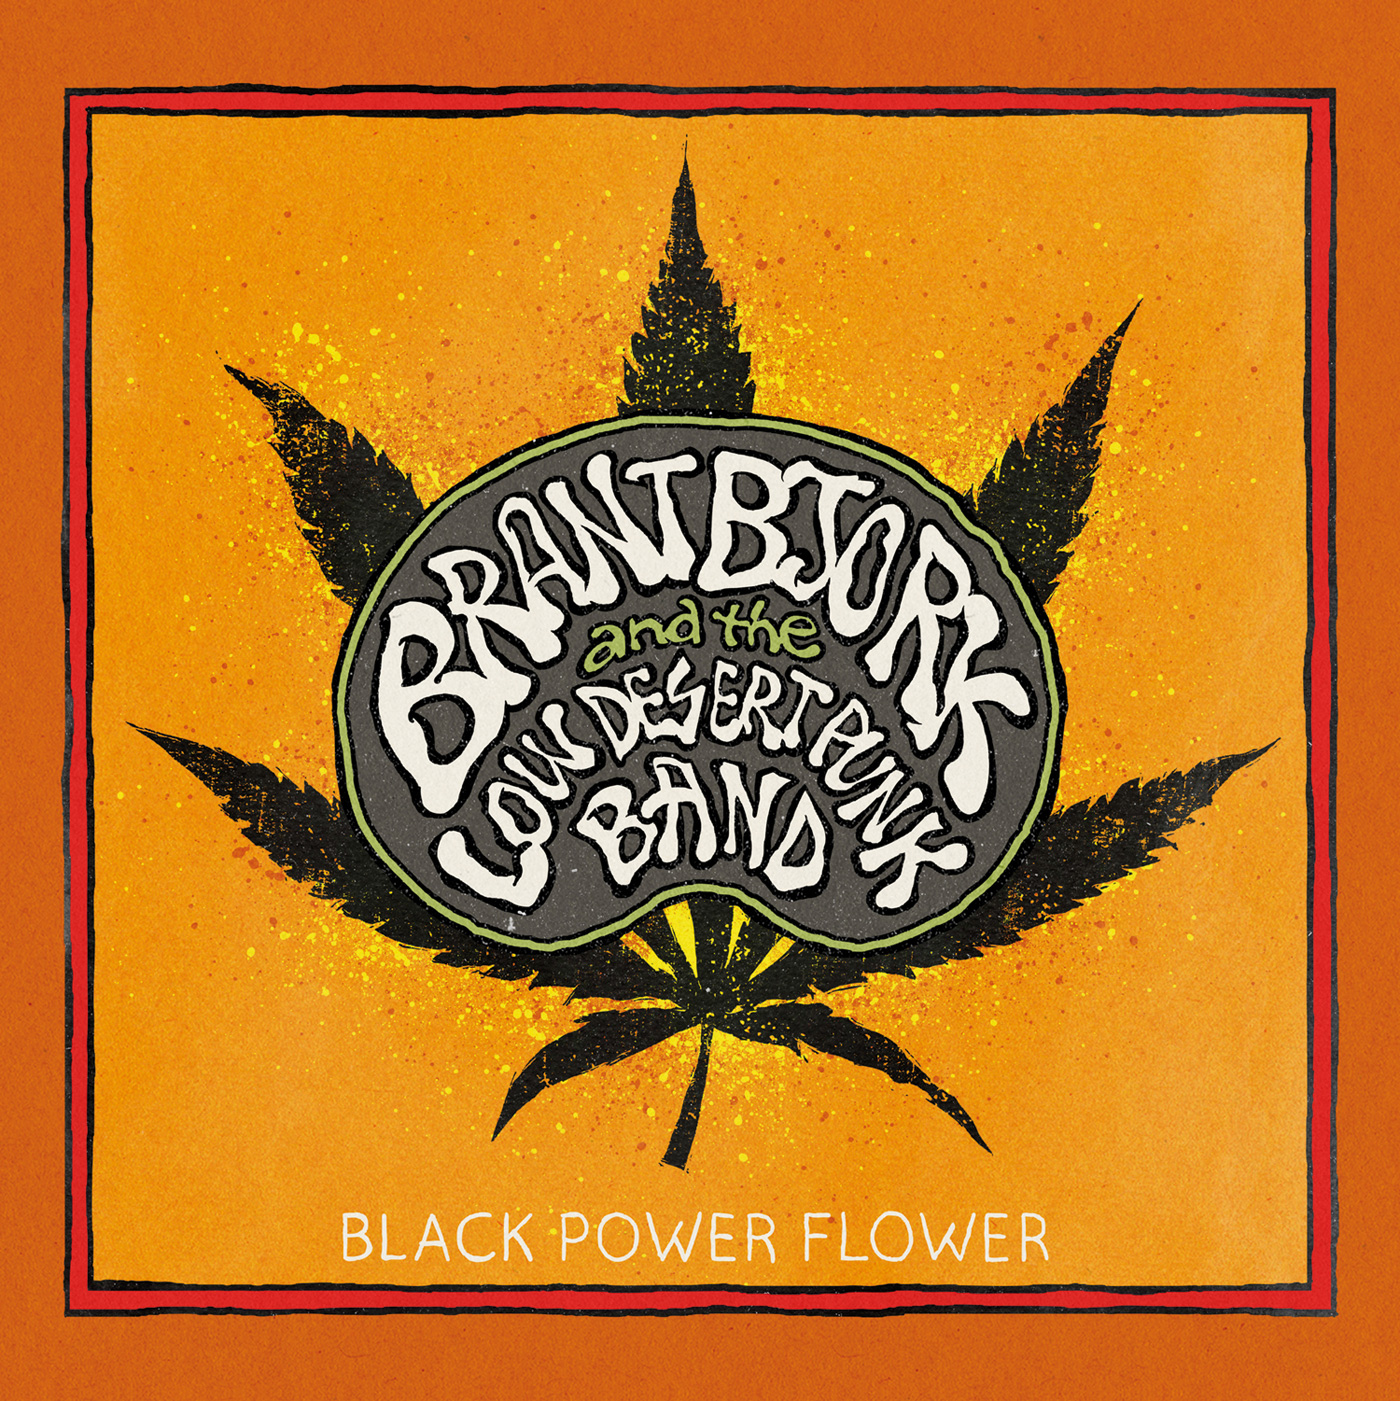 brant-bjork-and-the-low-desert-punk-band-black-power-flower